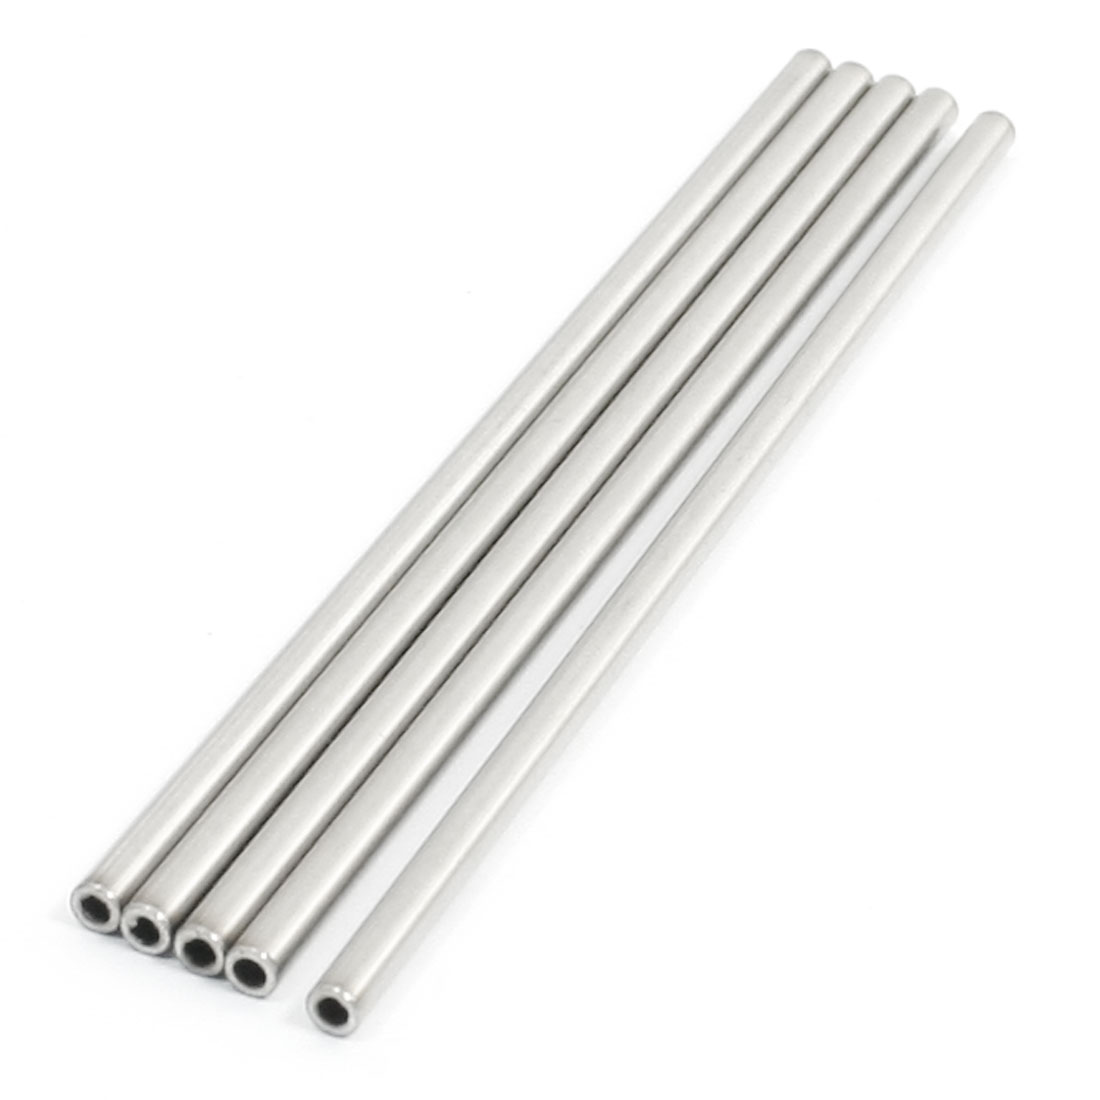 100mm x 3mm x 2mm Stainless Steel Ground Shaft Stock Round Rod 5Pcs